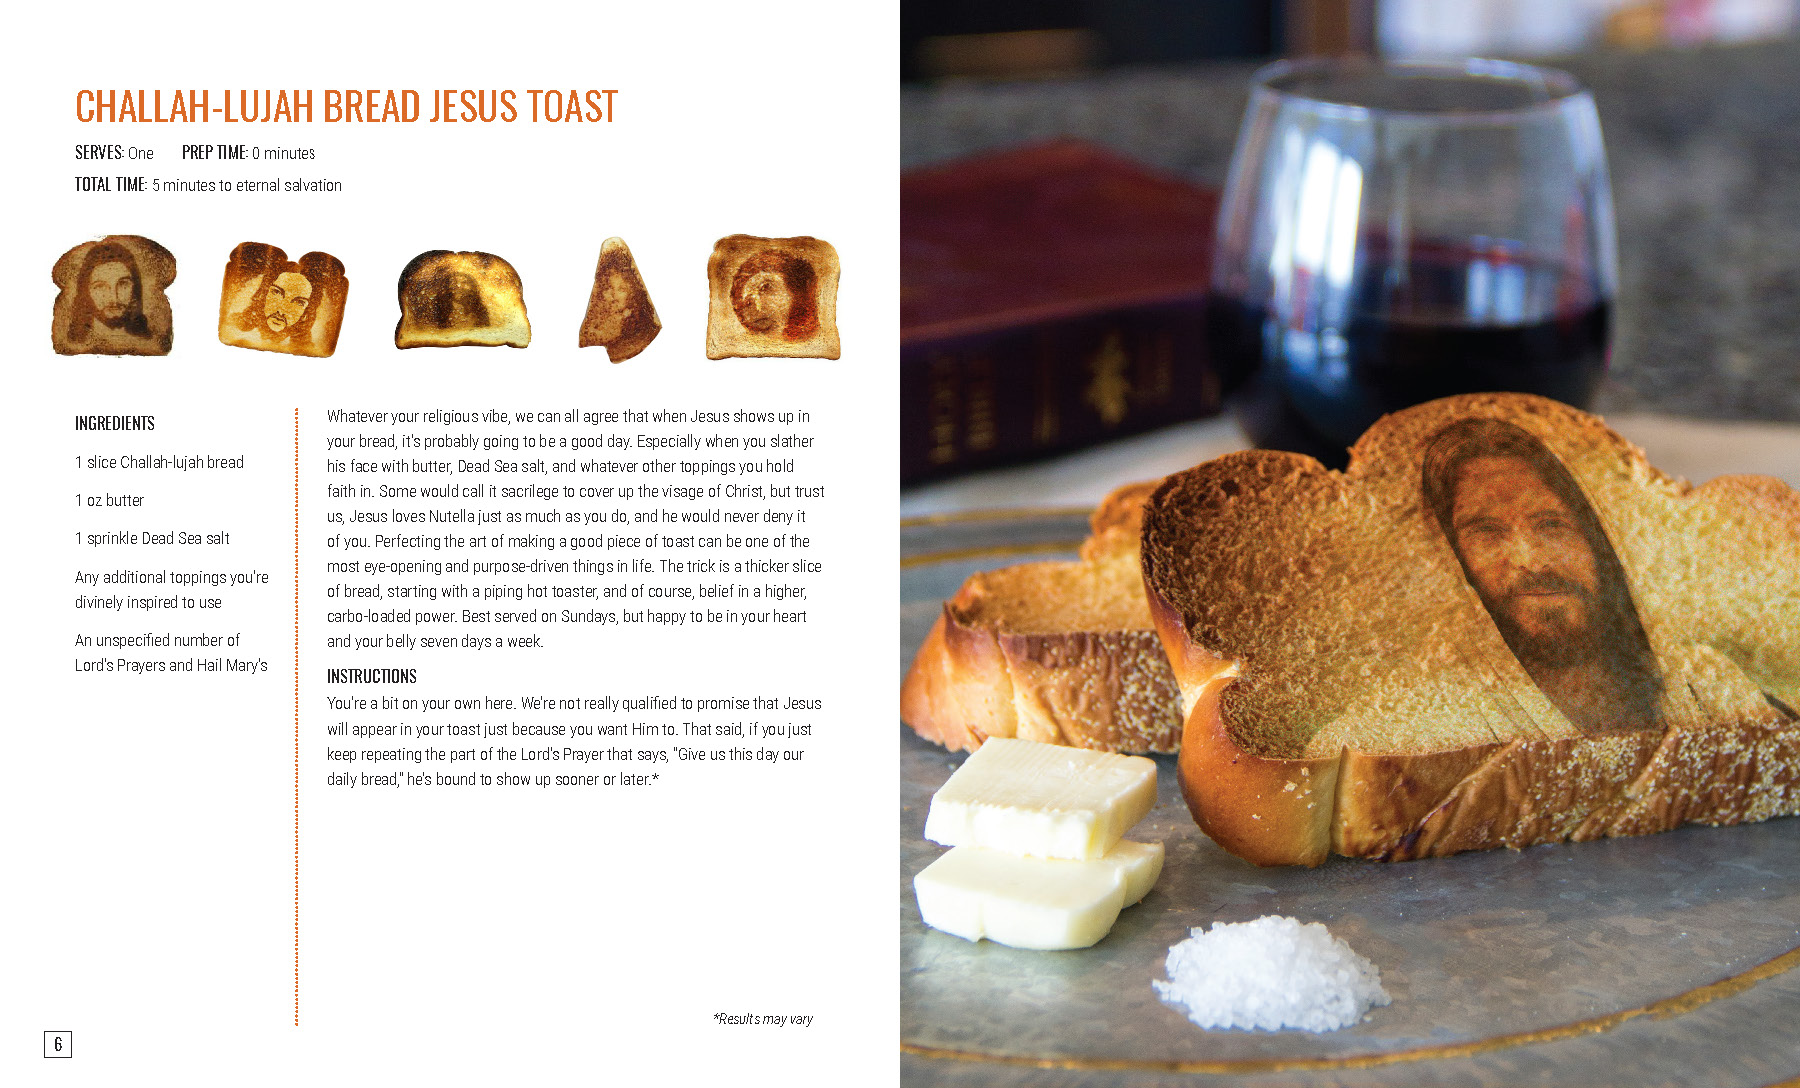 "CHALLAH-LUJAH BREAD JESUS TOAST  Whatever your religious vibe, we can all agree that when Jesus shows up in your bread, it's probably going to be a good day. Especially when you slather his face with butter, Dead Sea salt, and whatever other toppings you hold faith in. Some would call it sacrilege to cover up the visage of Christ, but trust us, Jesus loves Nutella just as much as you do, and he would never deny it of you. Perfecting the art of making a good piece of toast can be one of the most eye-opening and purpose-driven things in life. The trick is a thicker slice of bread, starting with a piping hot toaster, and of course, belief in a higher, carbo-loaded power. Best served on Sundays, but happy to be in your heart and your belly seven days a week.   INSTRUCTIONS   You're a bit on your own here. We're not really qualified to promise that Jesus will appear in your toast just because you want Him to. That said, if you just keep repeating the part of the Lord's Prayer that says, ""Give us this day our daily bread,"" he's bound to show up sooner or later.*"